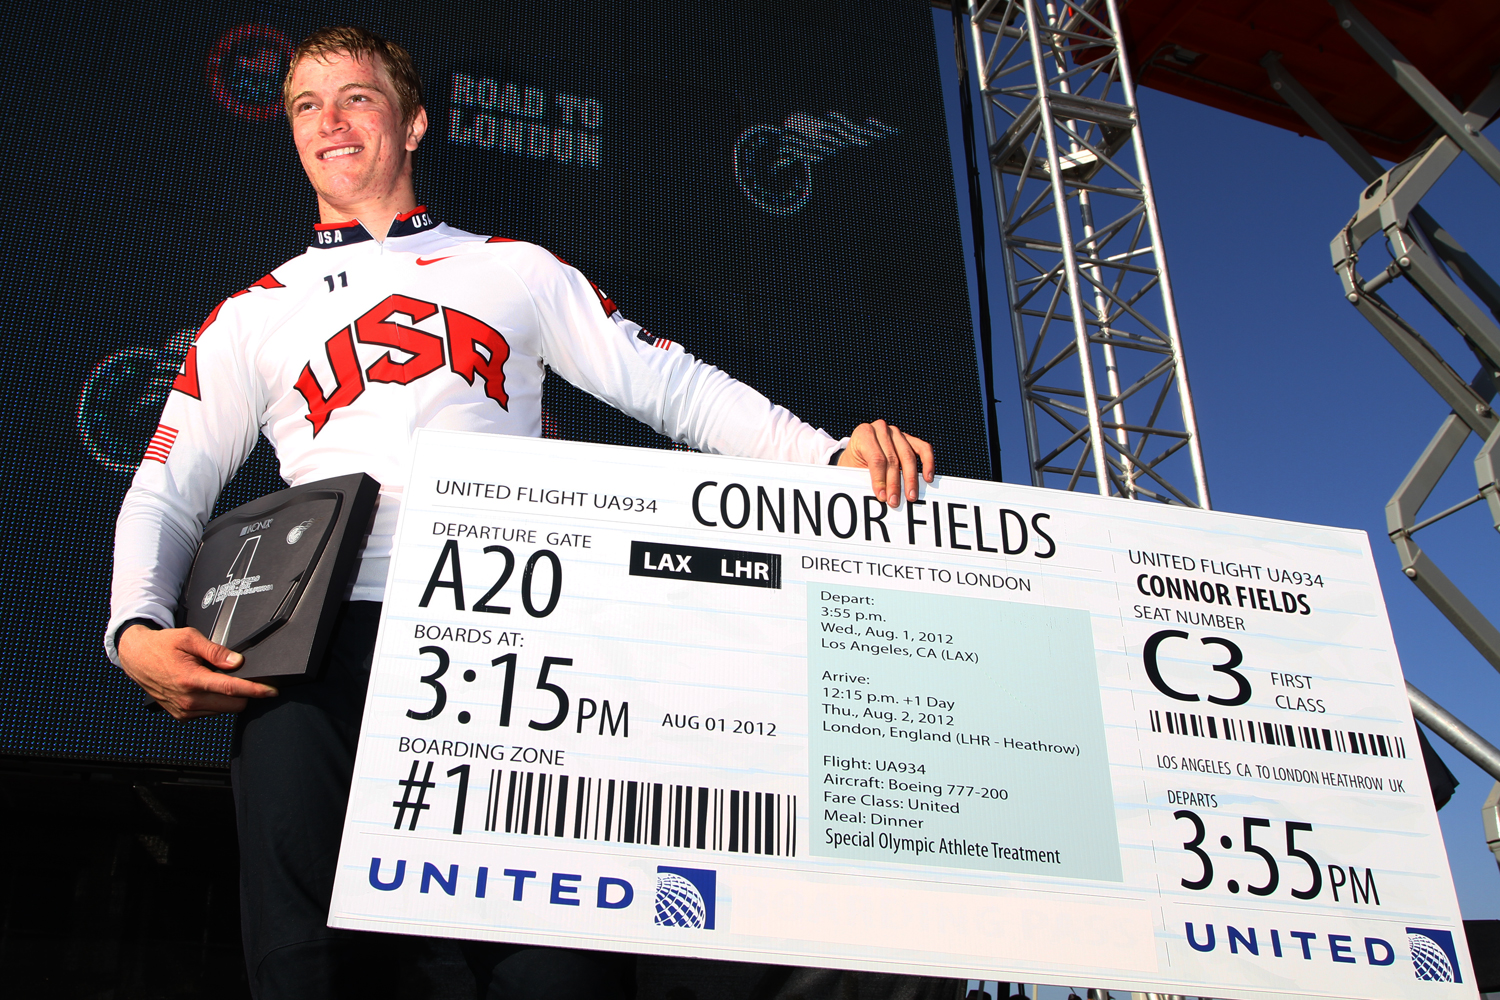 Connor Fileds wins USA Olympic Trails event